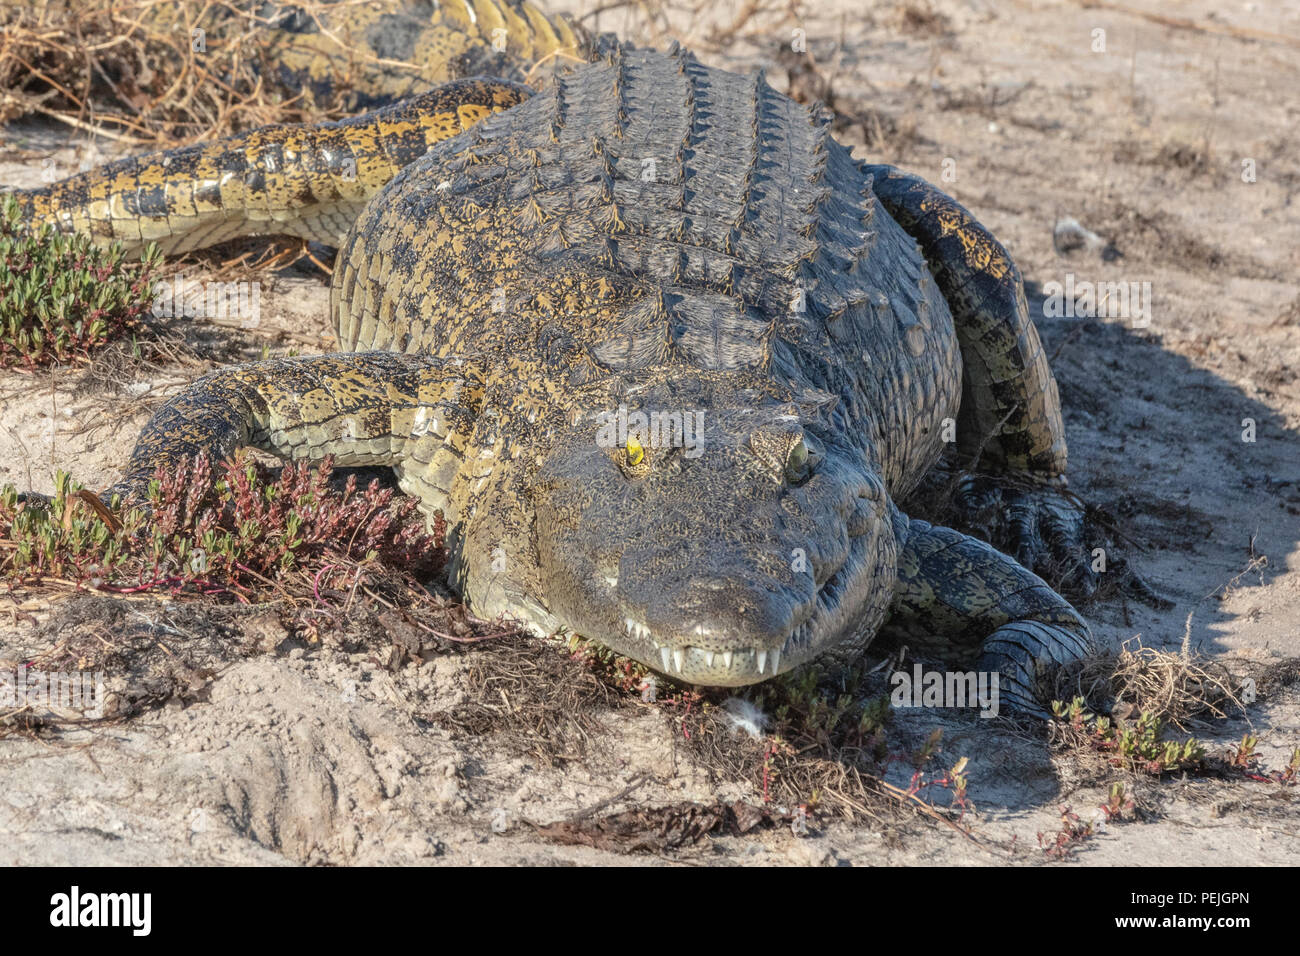 Nile crocodile, Chobe National Park, Botswana - Stock Image